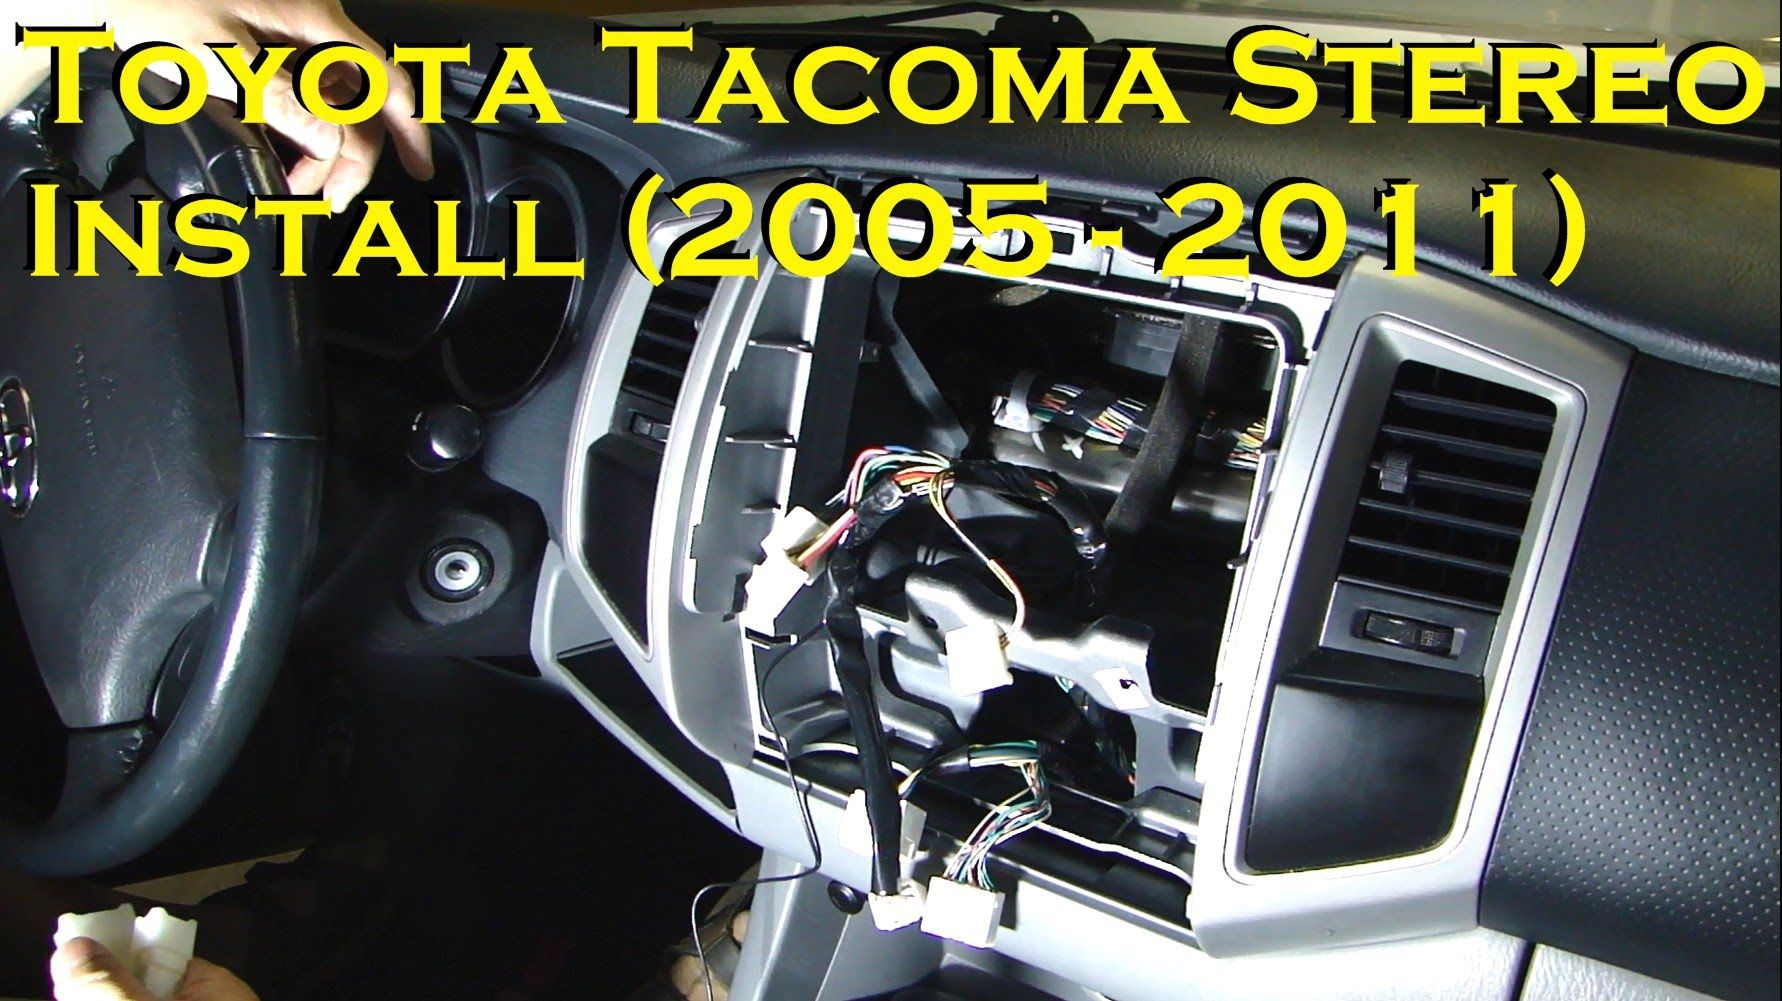 hight resolution of toyota camry stereo wiring diagram images toyota corolla 2006 toyota camry stereo wiring diagram images toyota